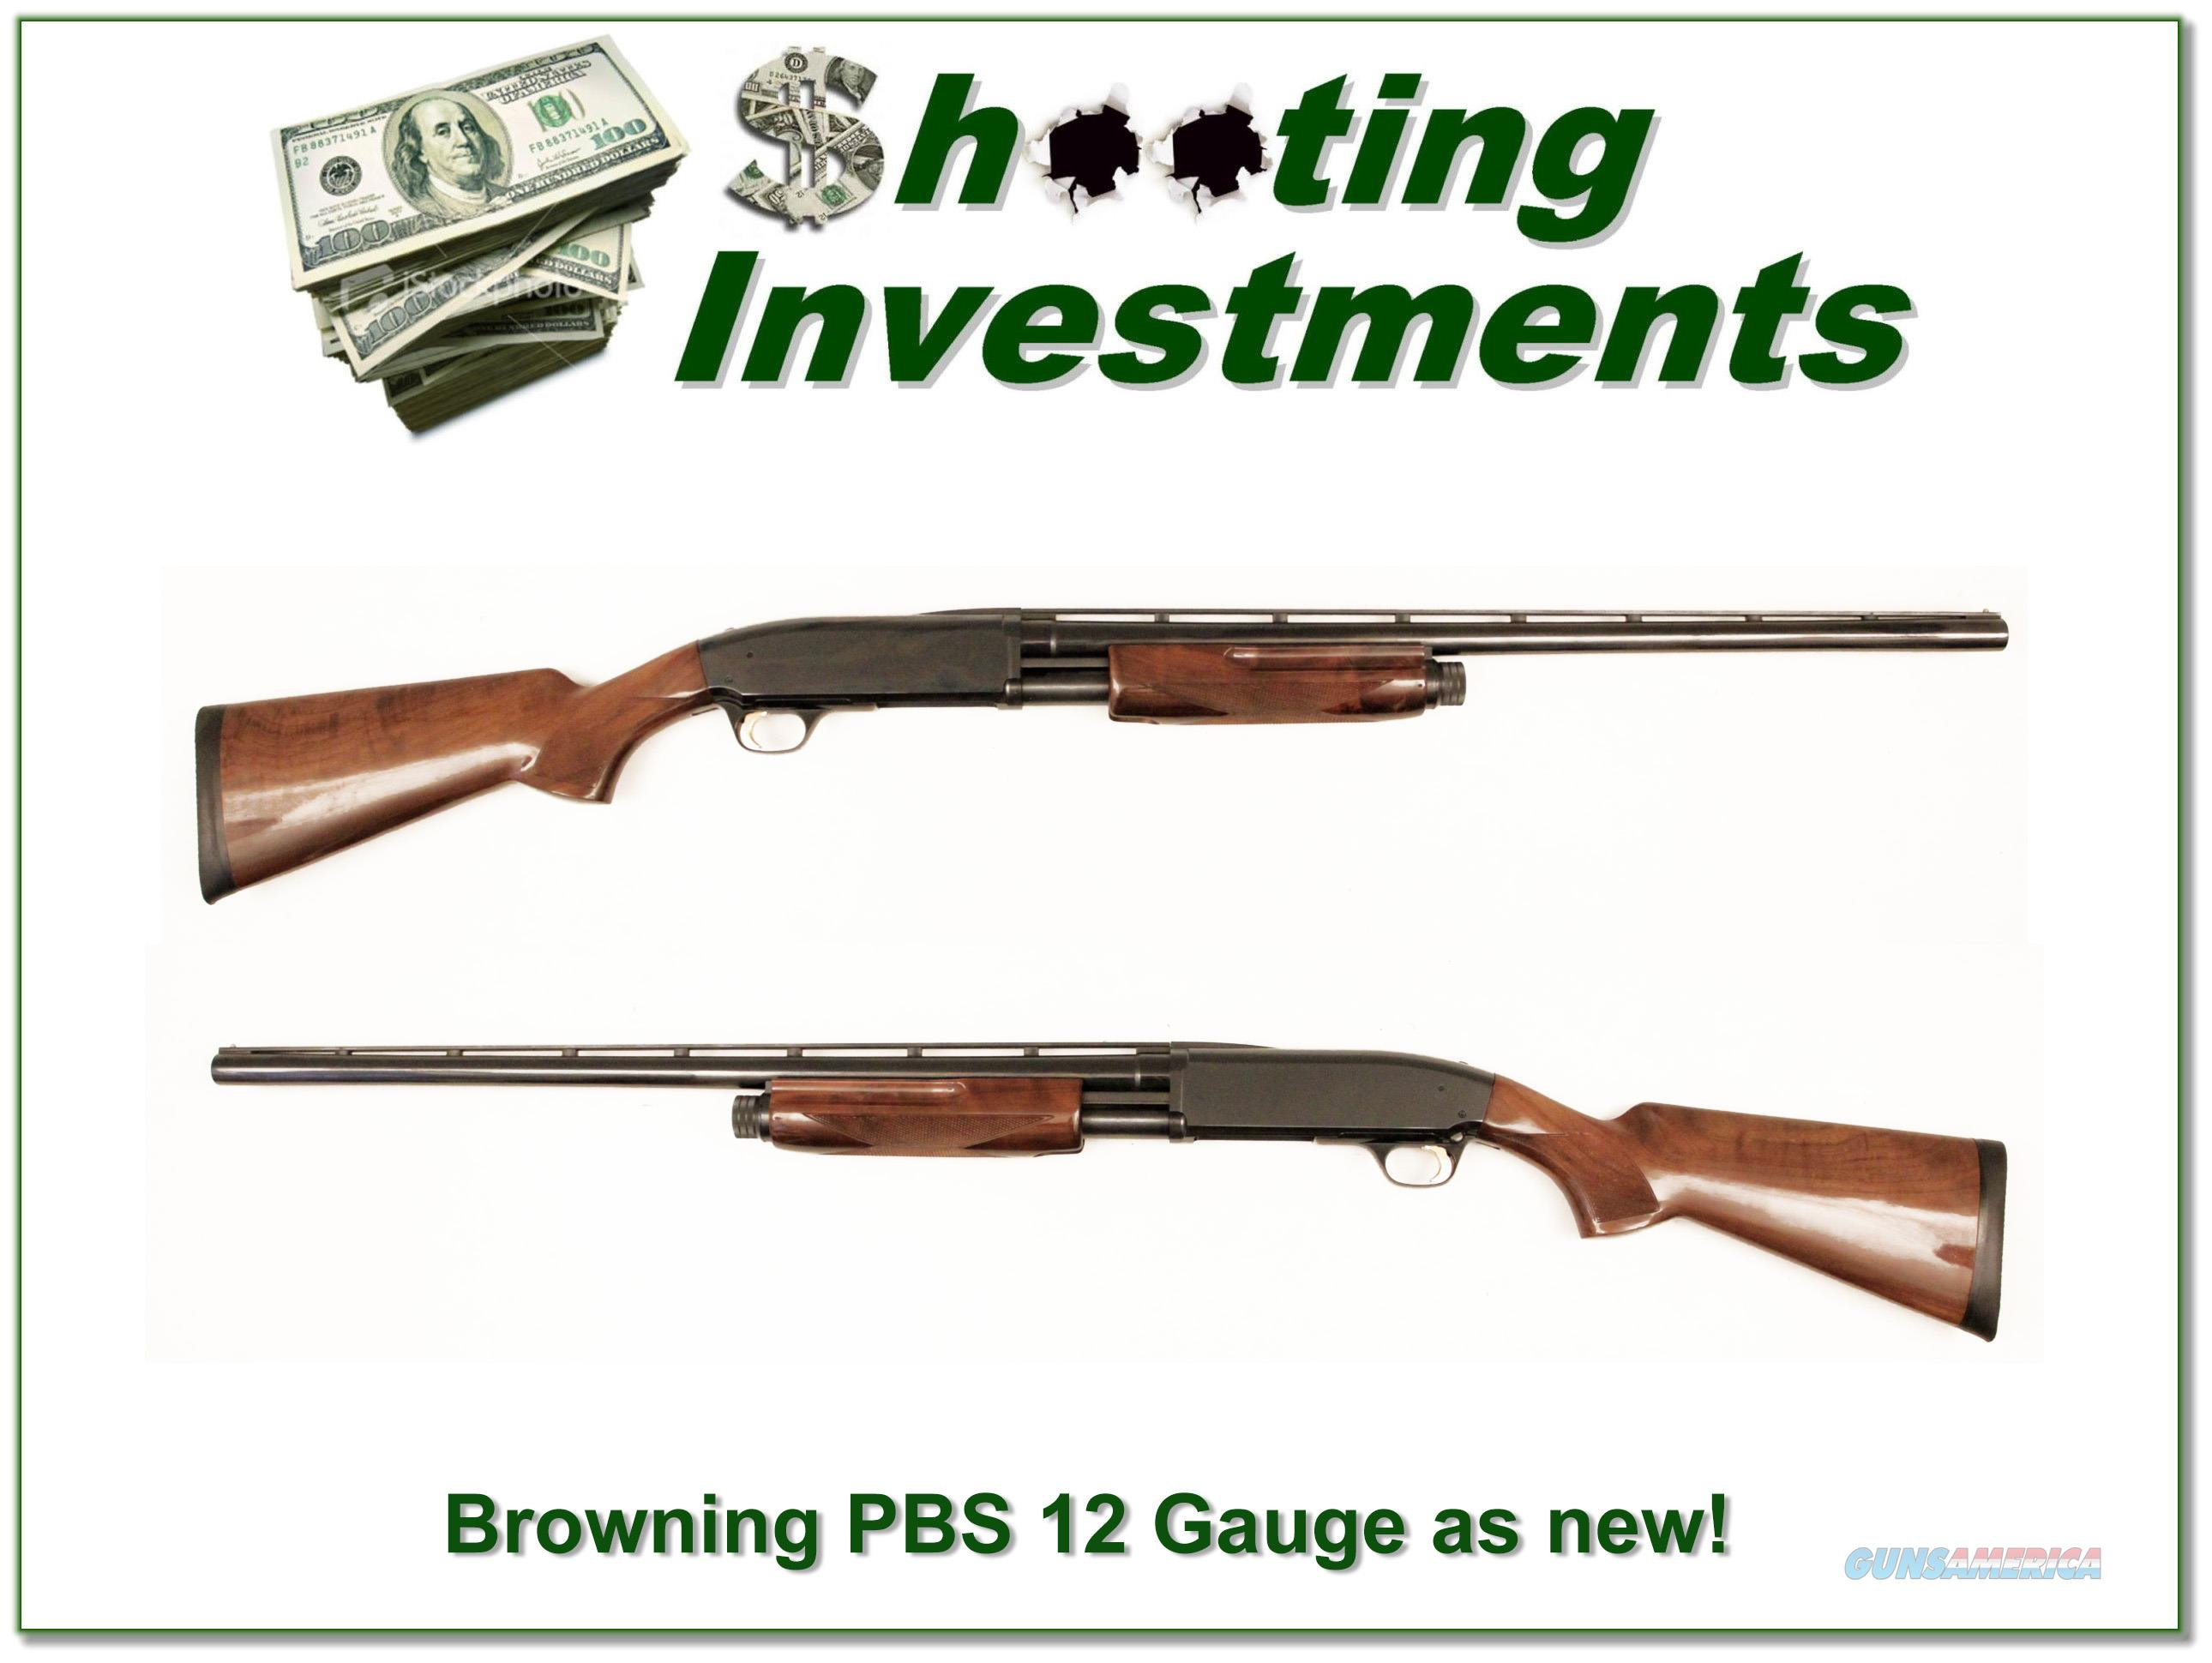 Browning BPS 12 Gauge 26in VR as new, unfired!  Guns > Shotguns > Browning Shotguns > Autoloaders > Hunting